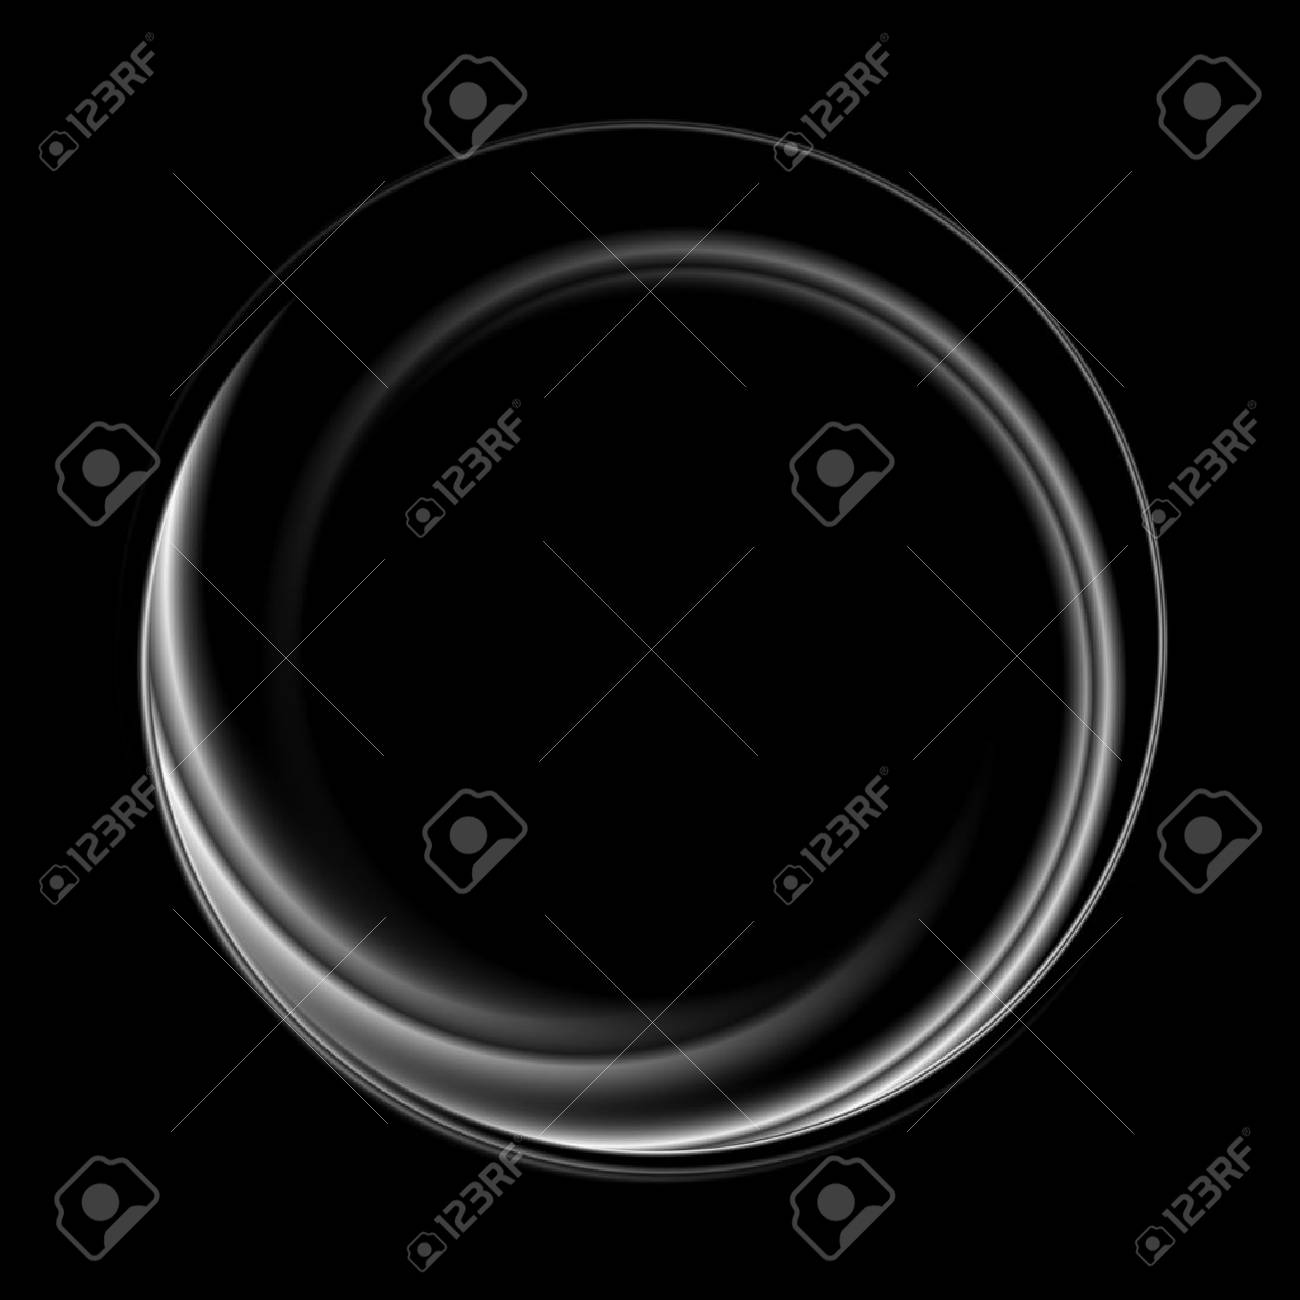 Abstract monochrome black white circle logo. Vector graphic background - 71141971